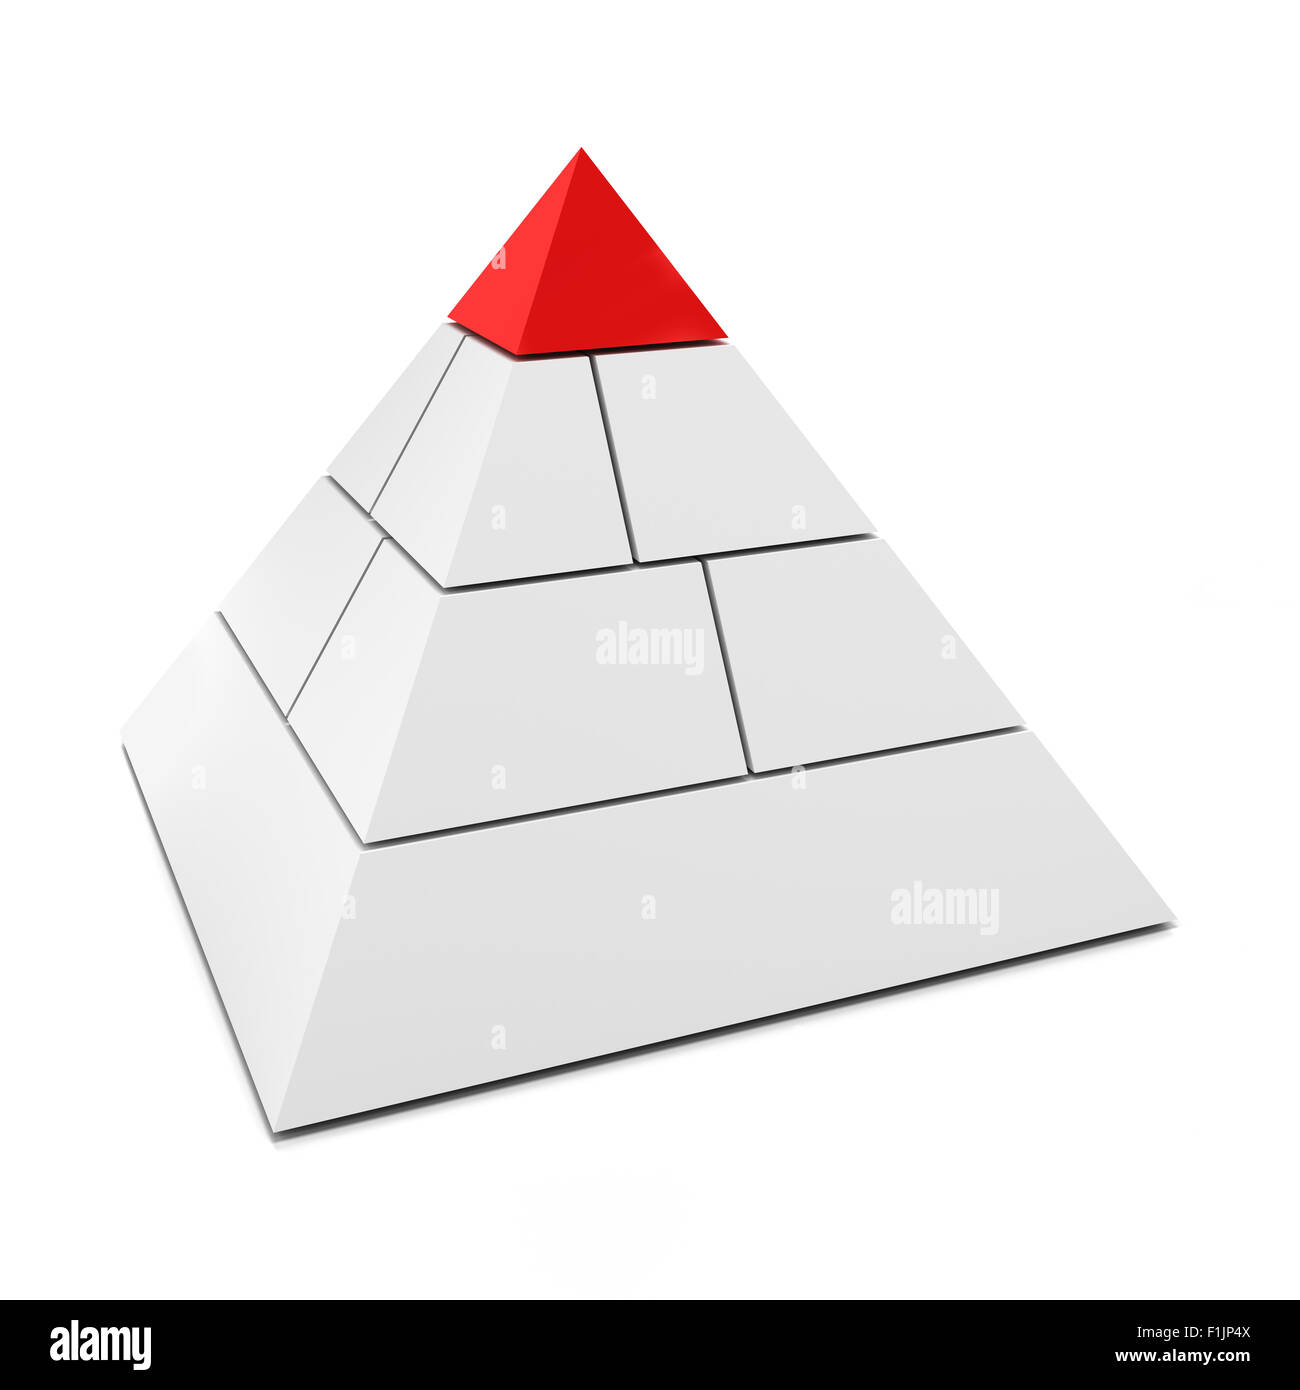 Blank 3d pyramid with top piece in red - Stock Image